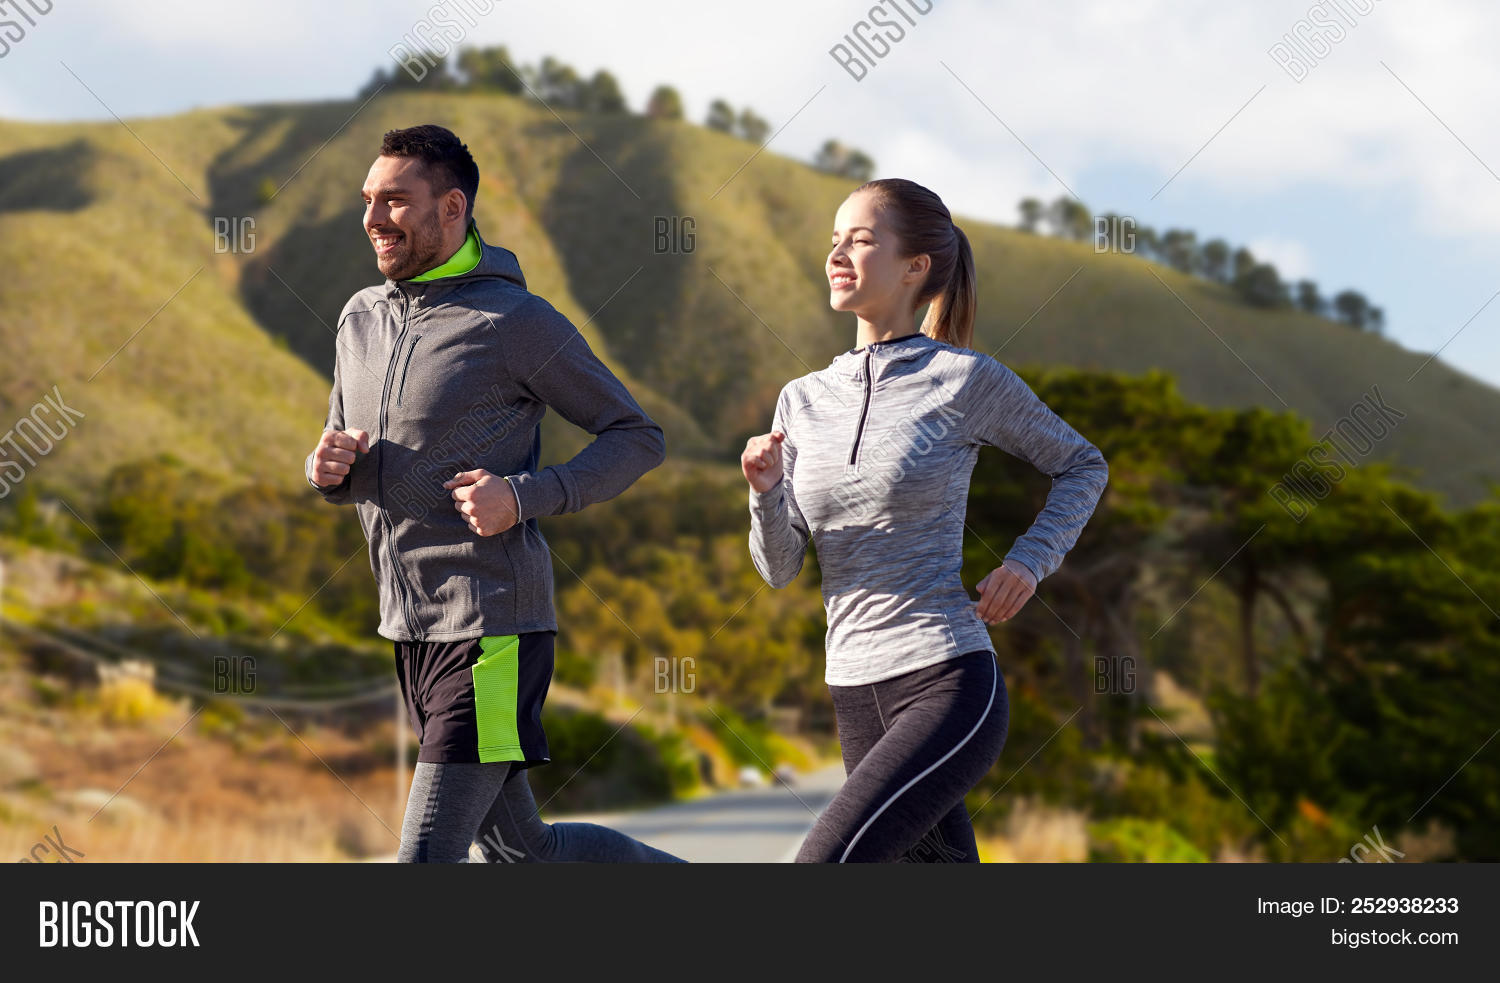 Fitness Sport People Image Photo Free Trial Bigstock